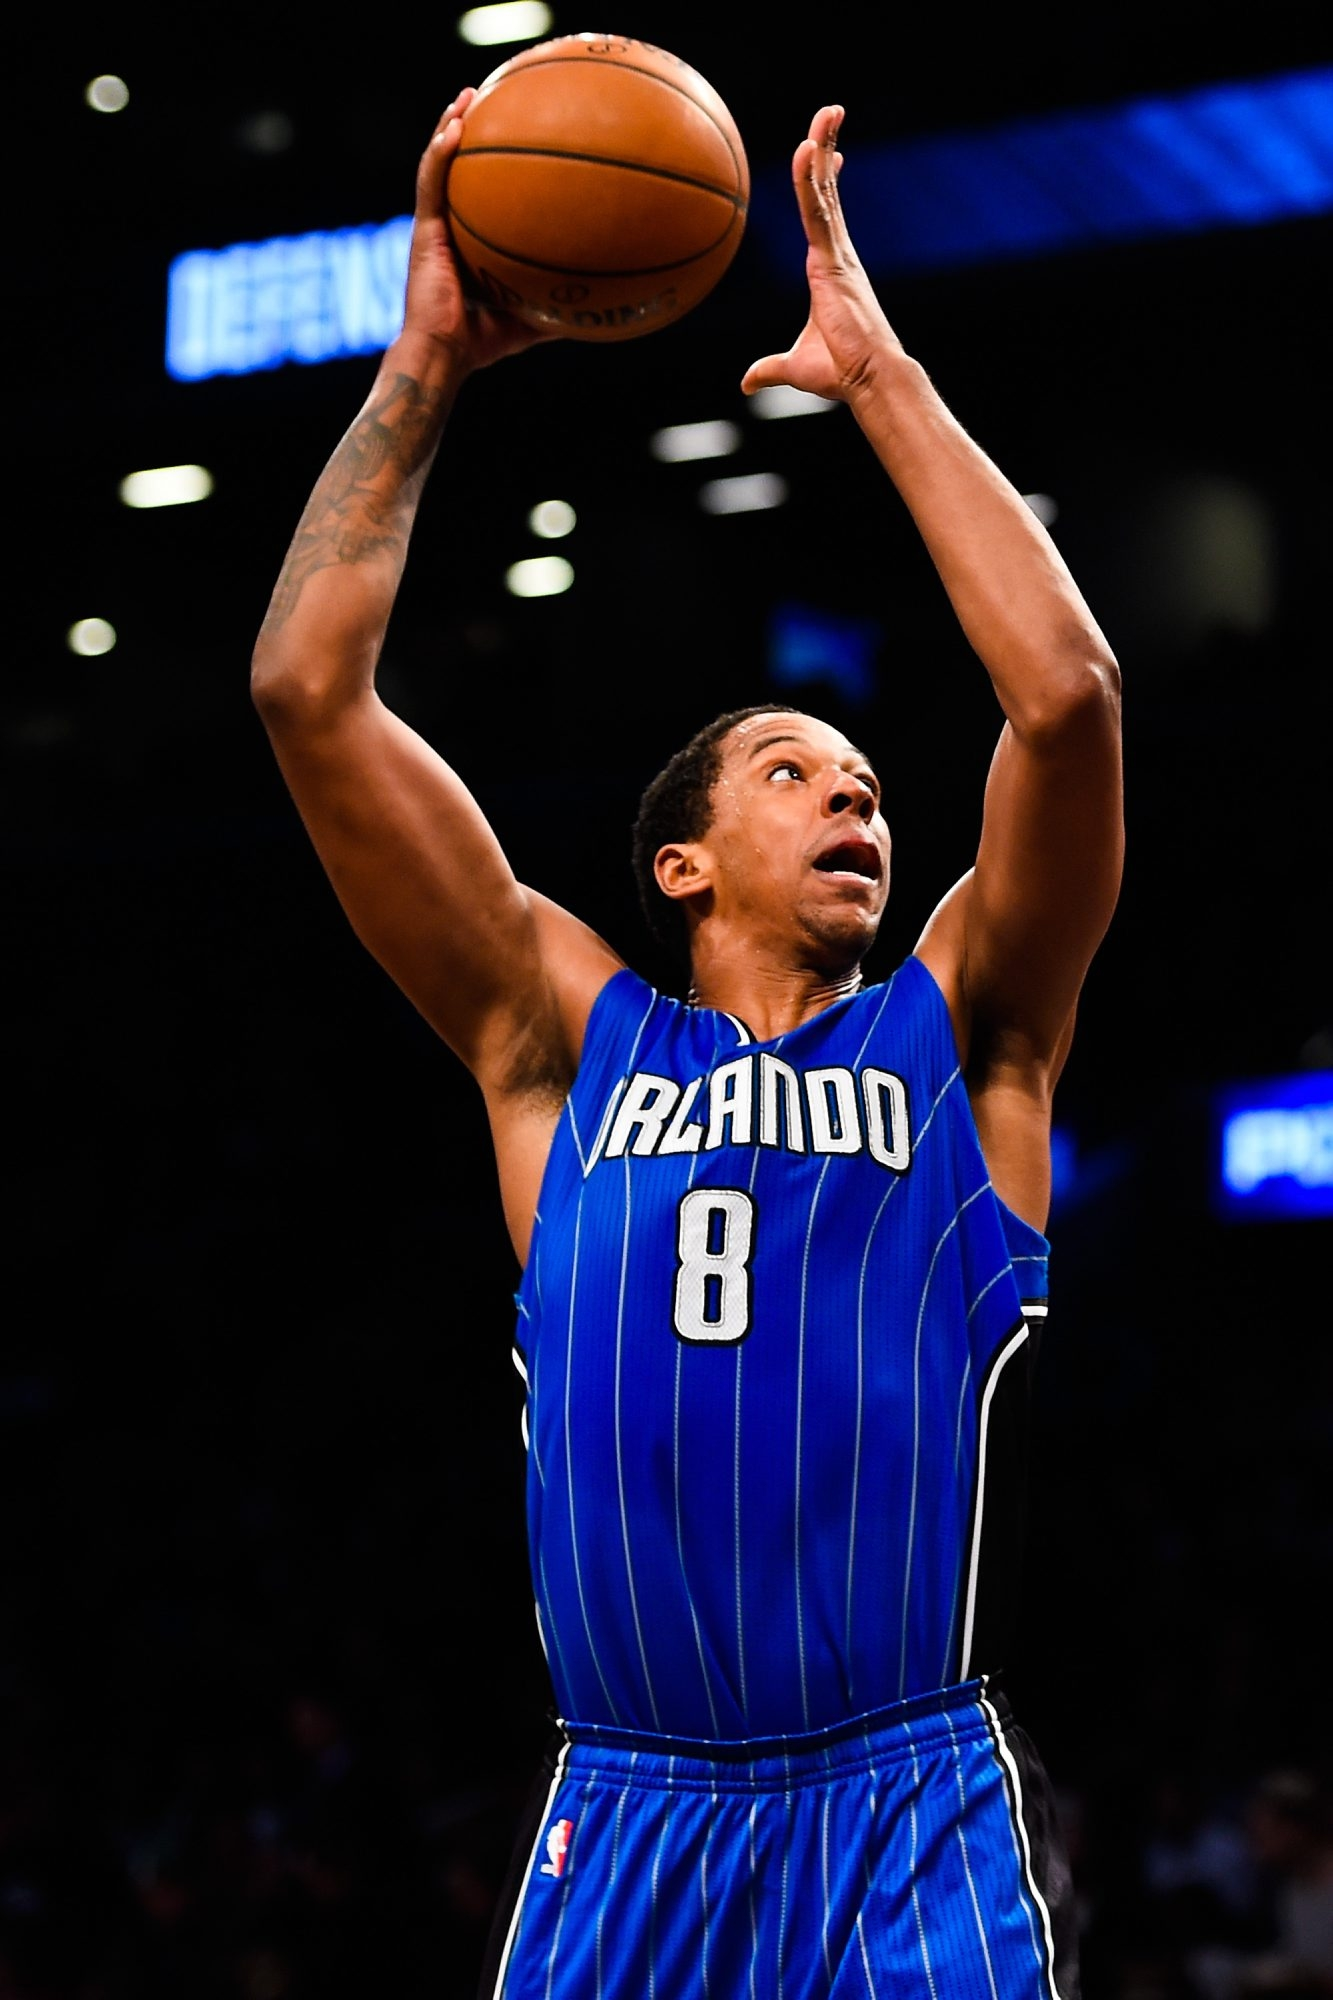 Channing Frye was acquired by the Cleveland Cavaliers in a trade from the Orlando Magic on Thursday.